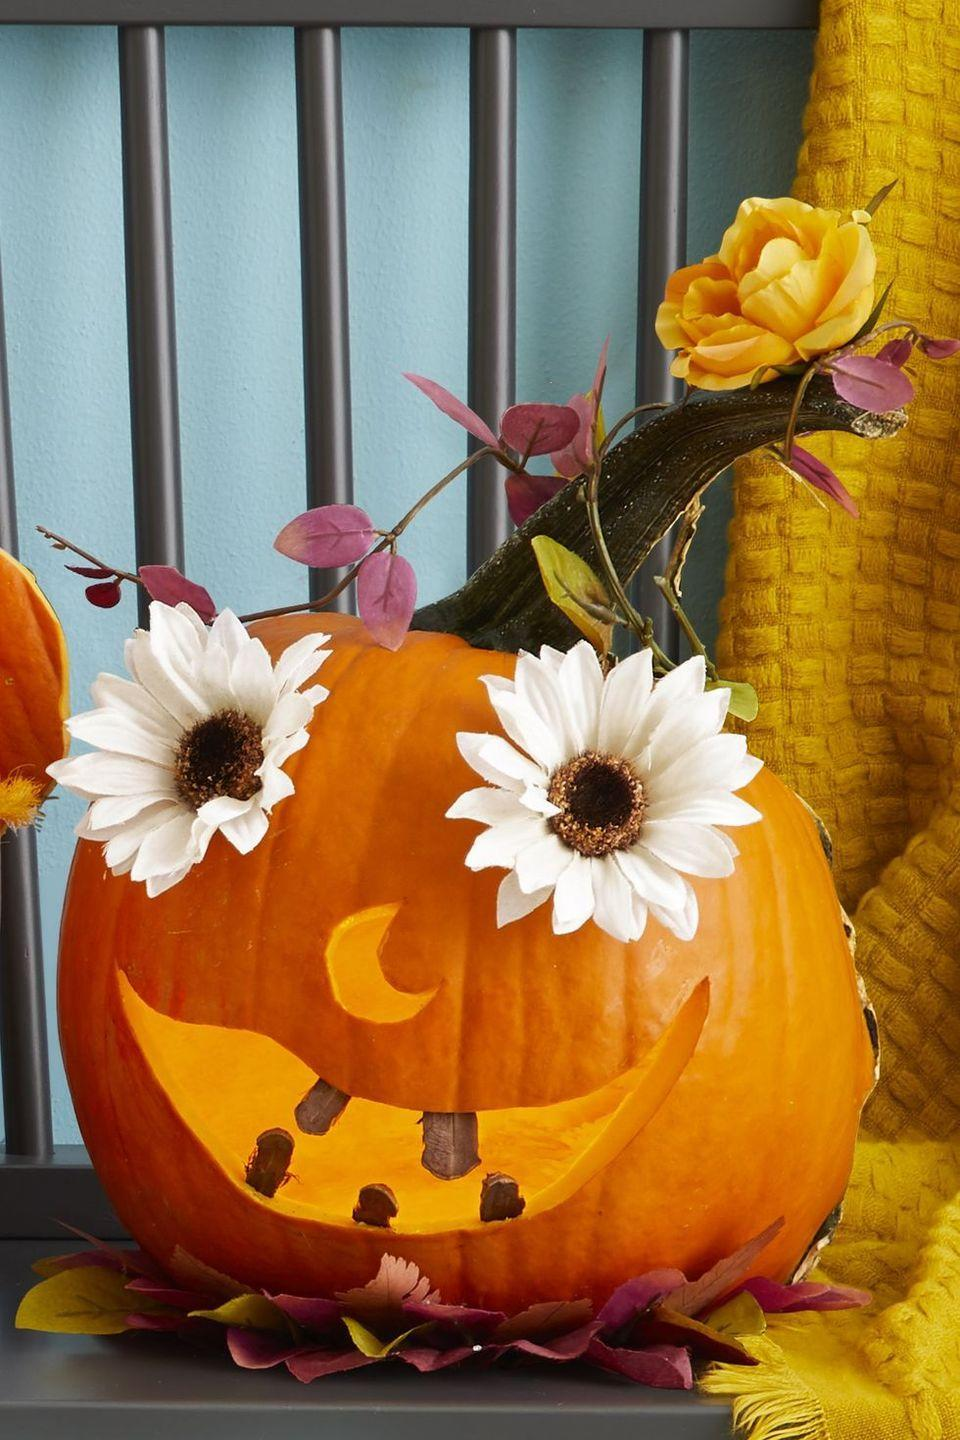 """<p>Sunflower seeds, pinecones, dried leaves, and artificial flowers bring this toothy pumpkin to life. You can even forage for some of these supplies in your own backyard.</p><p><a class=""""link rapid-noclick-resp"""" href=""""https://go.redirectingat.com?id=74968X1596630&url=https%3A%2F%2Fwww.walmart.com%2Fsearch%2F%3Fquery%3Dcraft%2Bpinecones&sref=https%3A%2F%2Fwww.thepioneerwoman.com%2Fhome-lifestyle%2Fcrafts-diy%2Fg36982763%2Fpumpkin-carving-ideas%2F"""" rel=""""nofollow noopener"""" target=""""_blank"""" data-ylk=""""slk:SHOP CRAFT PINECONES"""">SHOP CRAFT PINECONES</a></p>"""